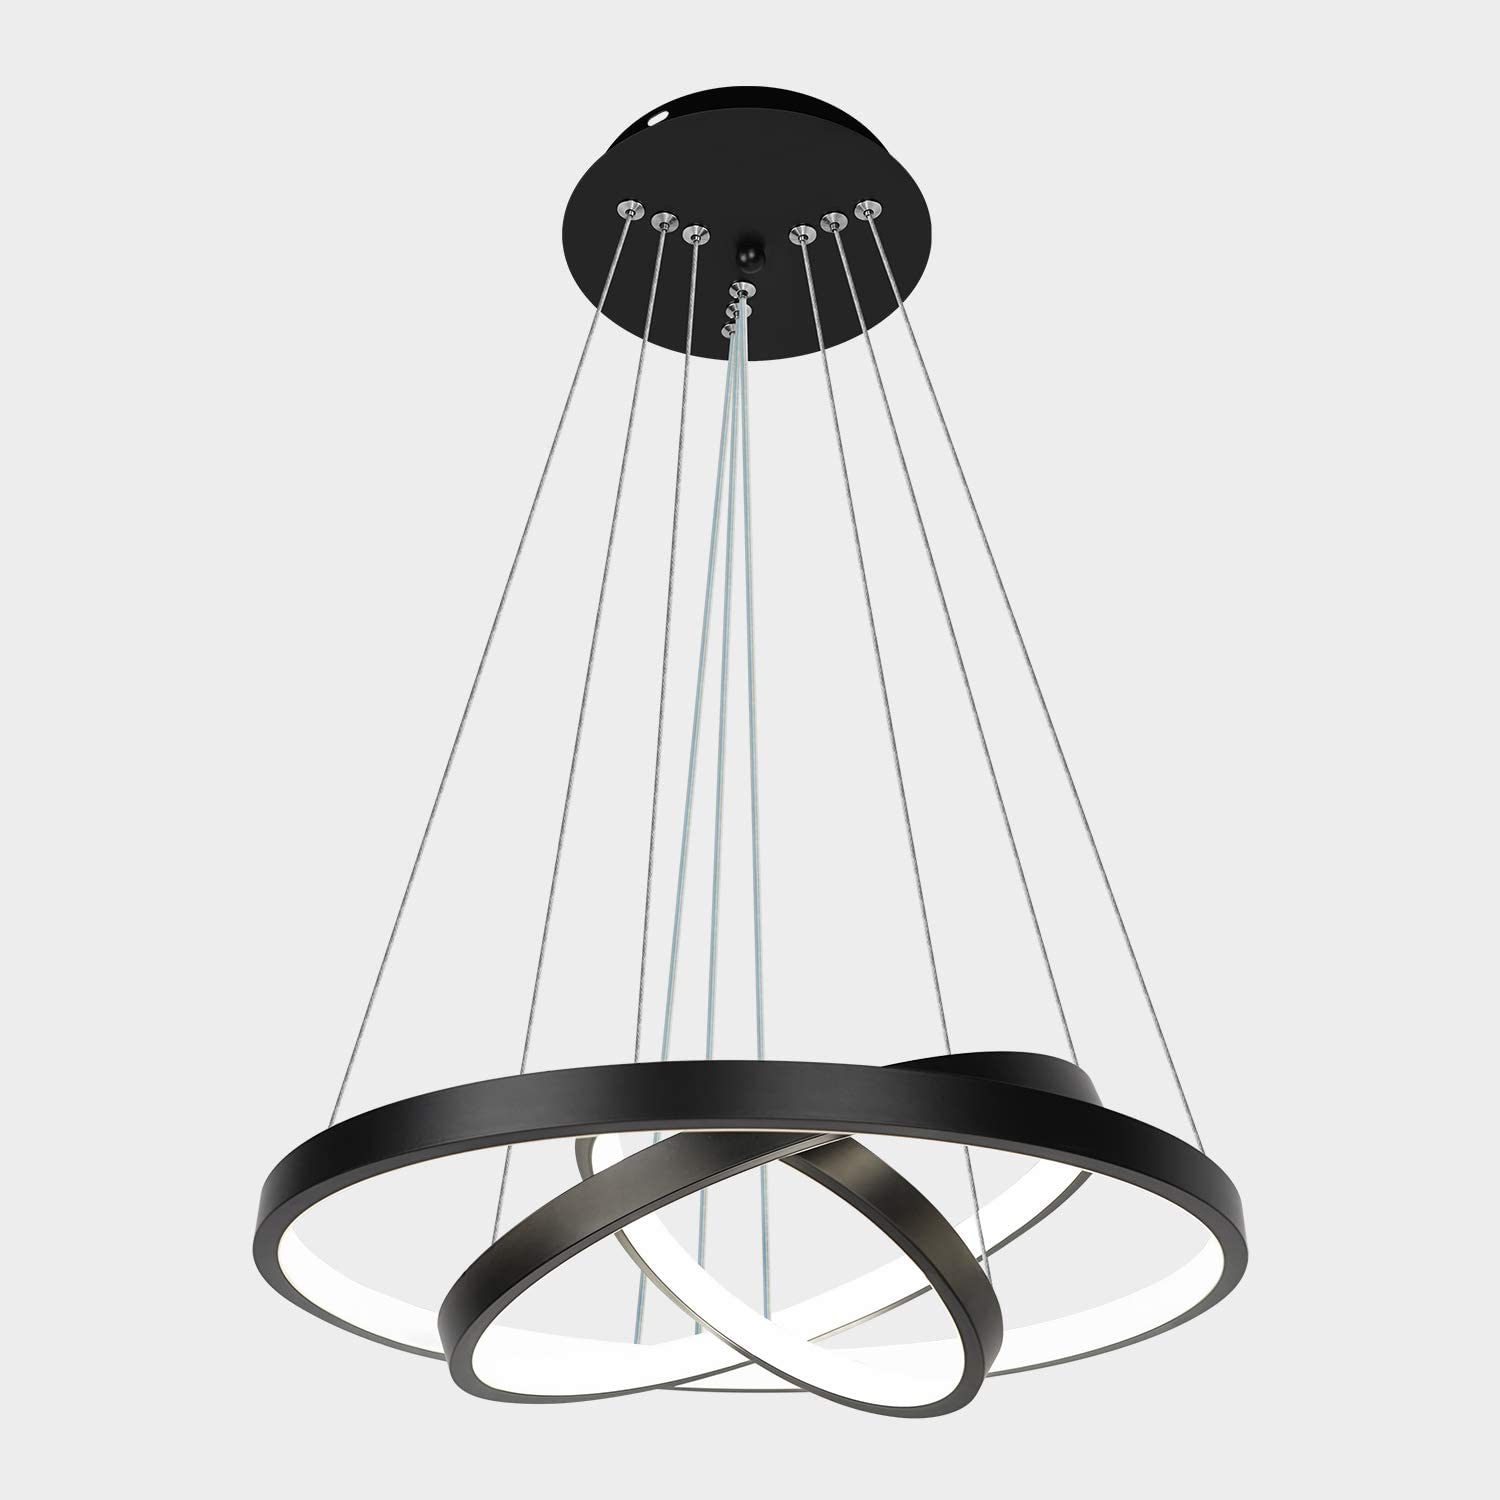 Amazon Com Modern Black Led Chandelier Adjustable Hanging Pendant Light Ceiling Light Fixtures For Living Room Dining Room Kitchen Bedroom Cold Light 16 Inches 6000k 56w Home Improvement